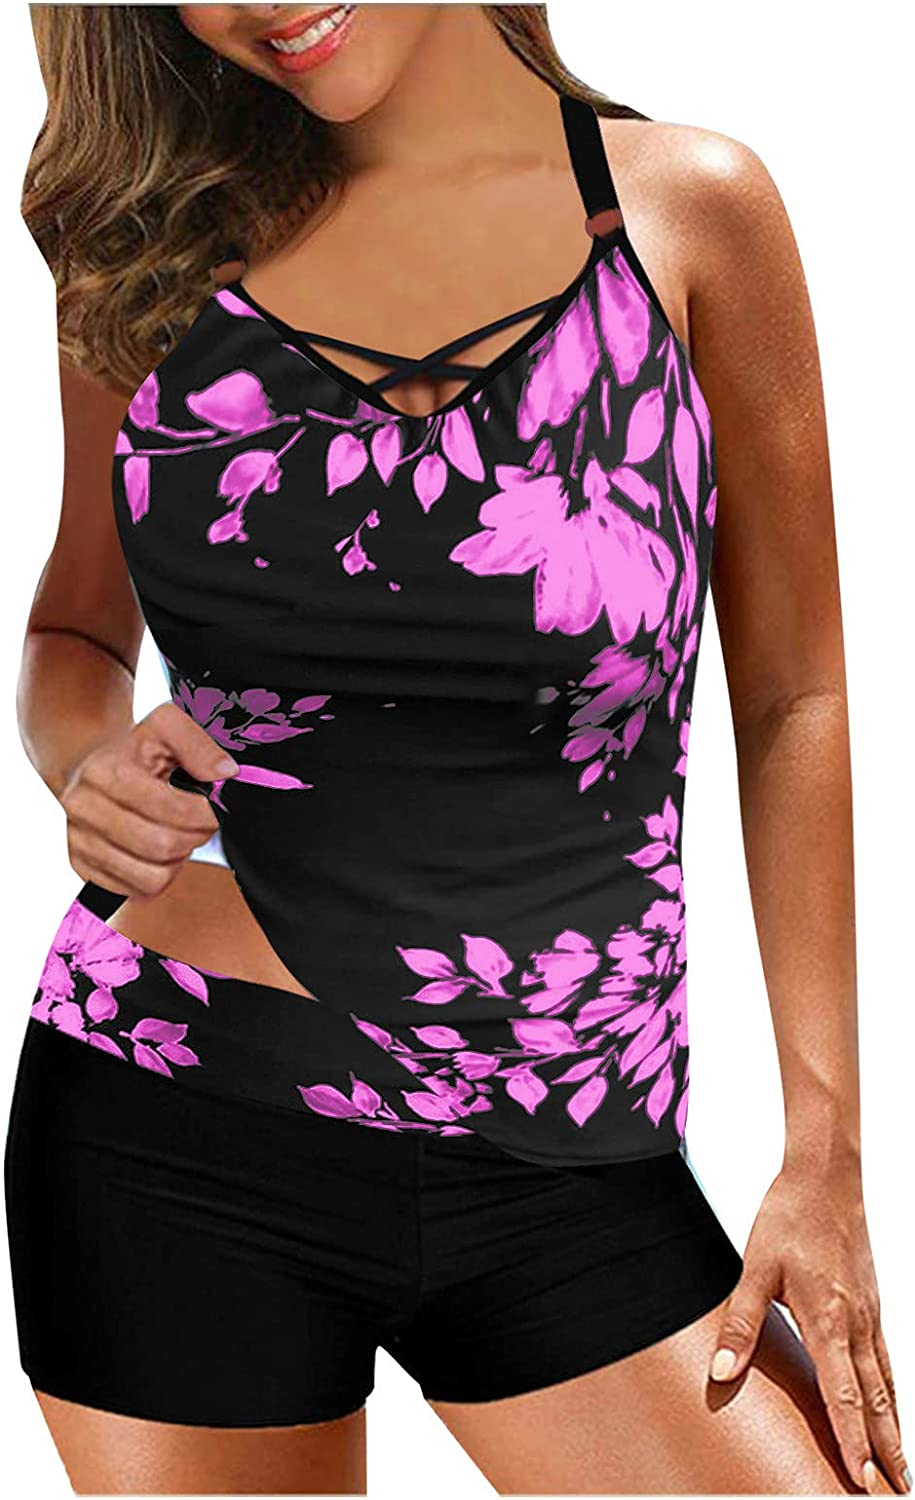 FANGTION Bathing Suit Cover One Piece Bathing Suit for Women Sexy Womens Tankini Swimsuits Cover Ups Swimwear Swimsuits